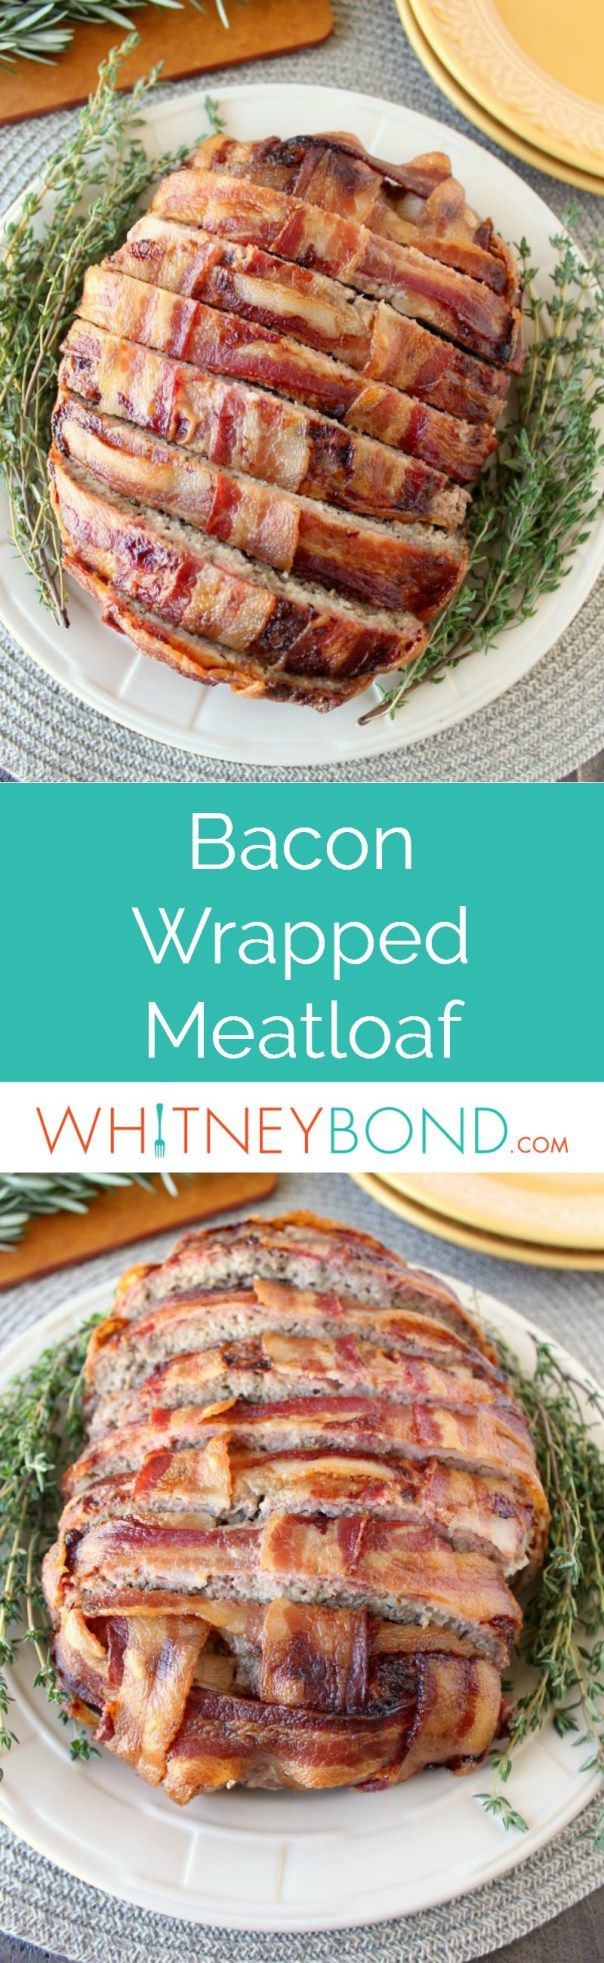 This Bacon Wrapped Meatloaf recipe is easy enough to cook up for weeknight dinners, but also impressive enough for a dinner party!